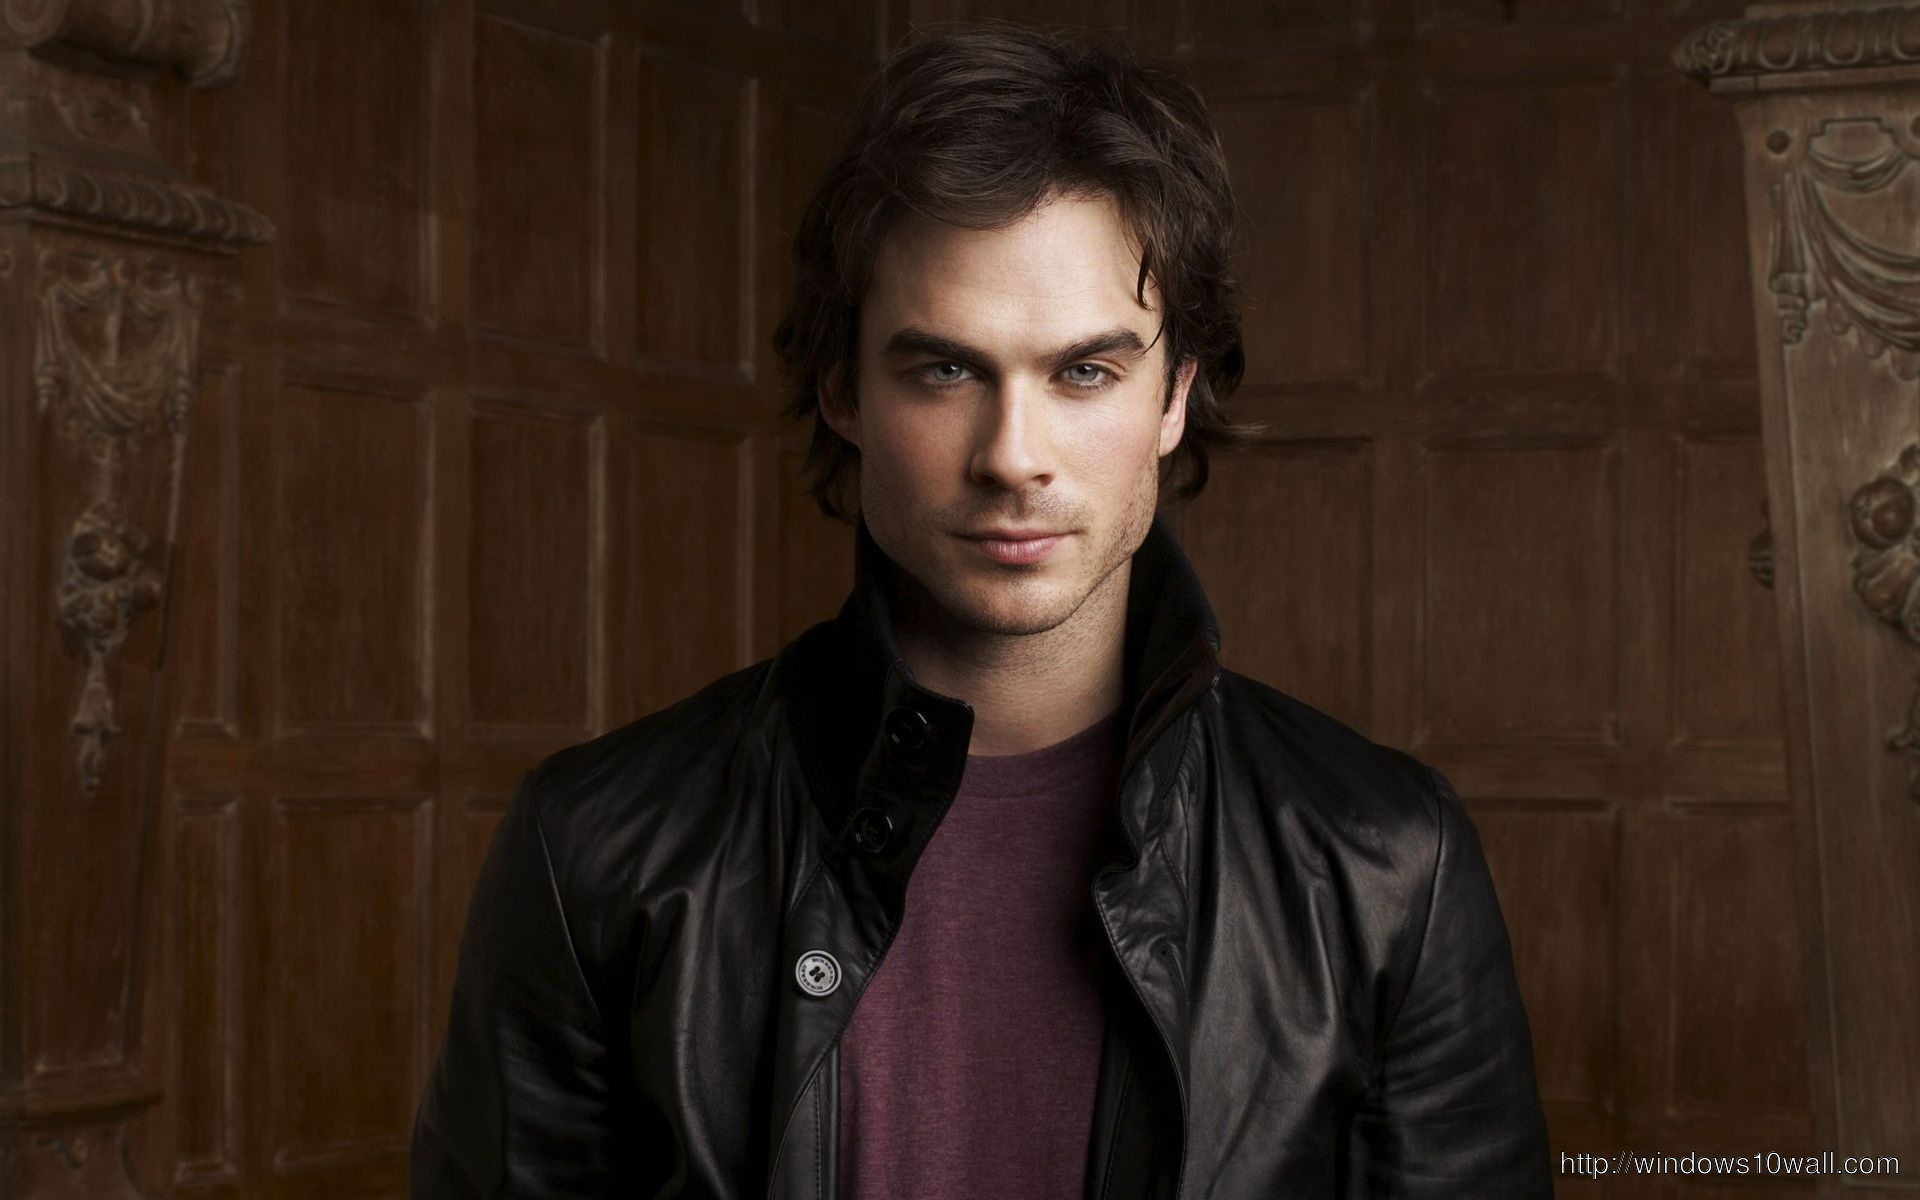 Ian Somerhalder Brown Background Wallpaper